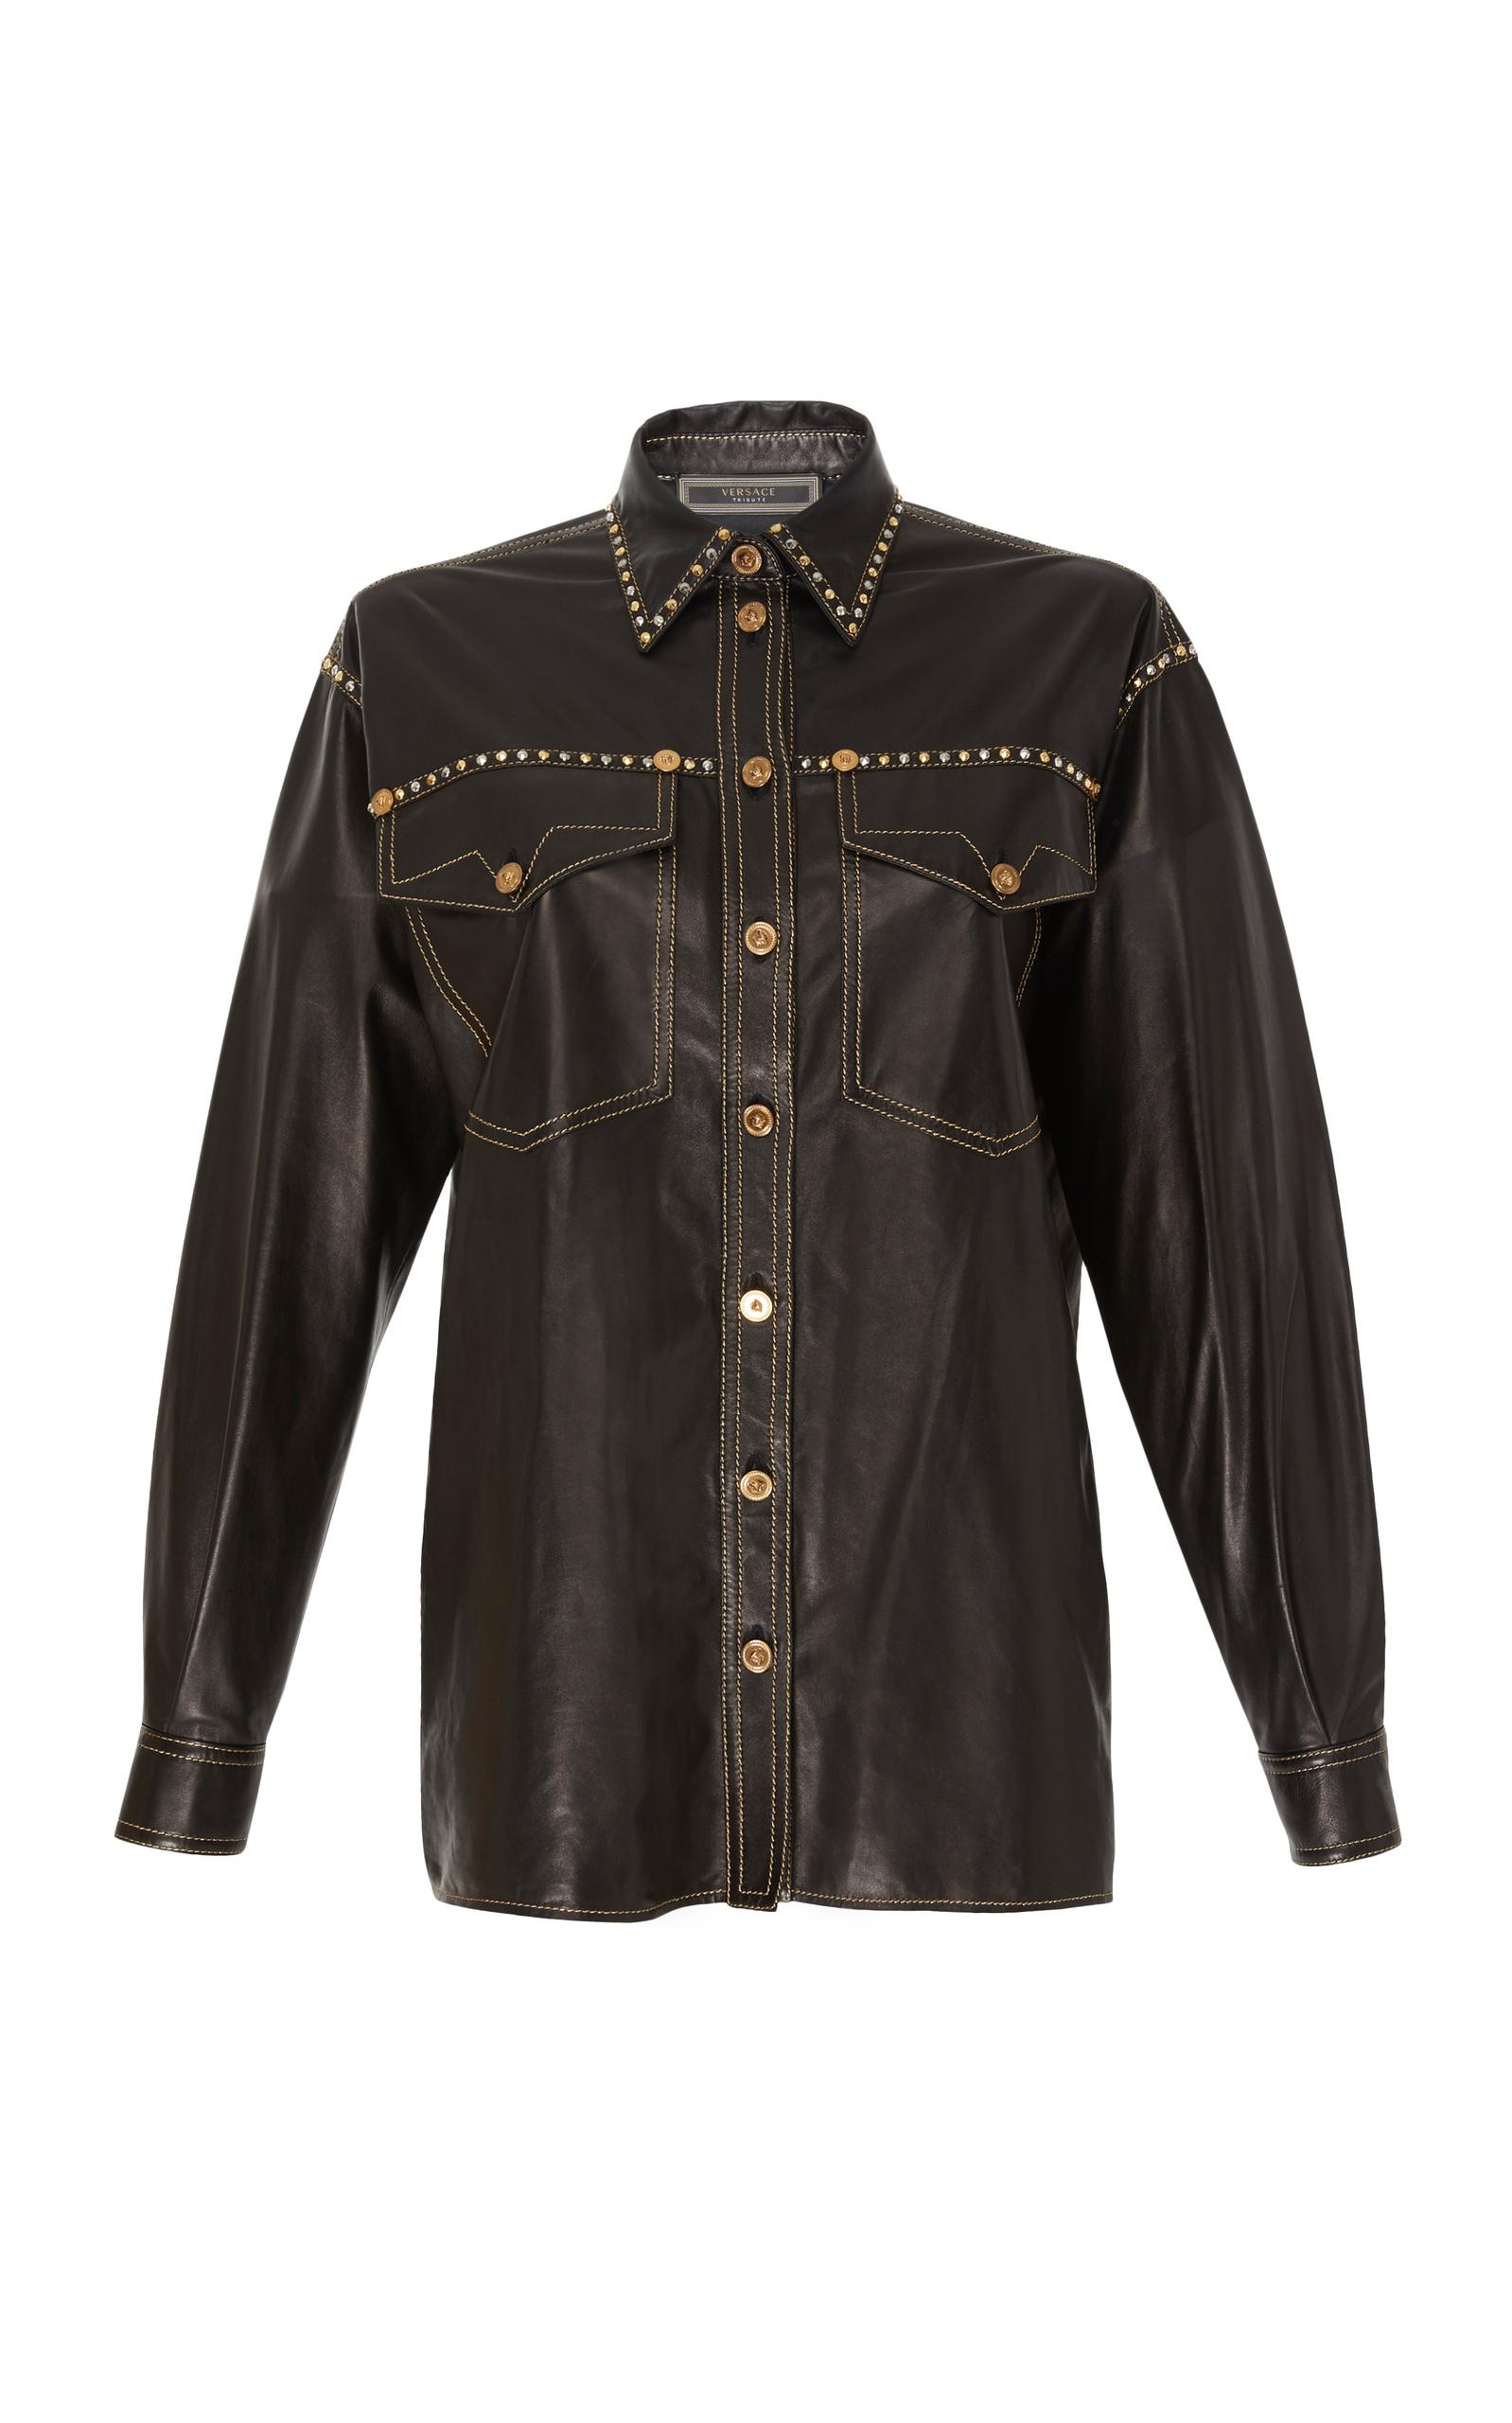 Versace Leather Shirt In Black